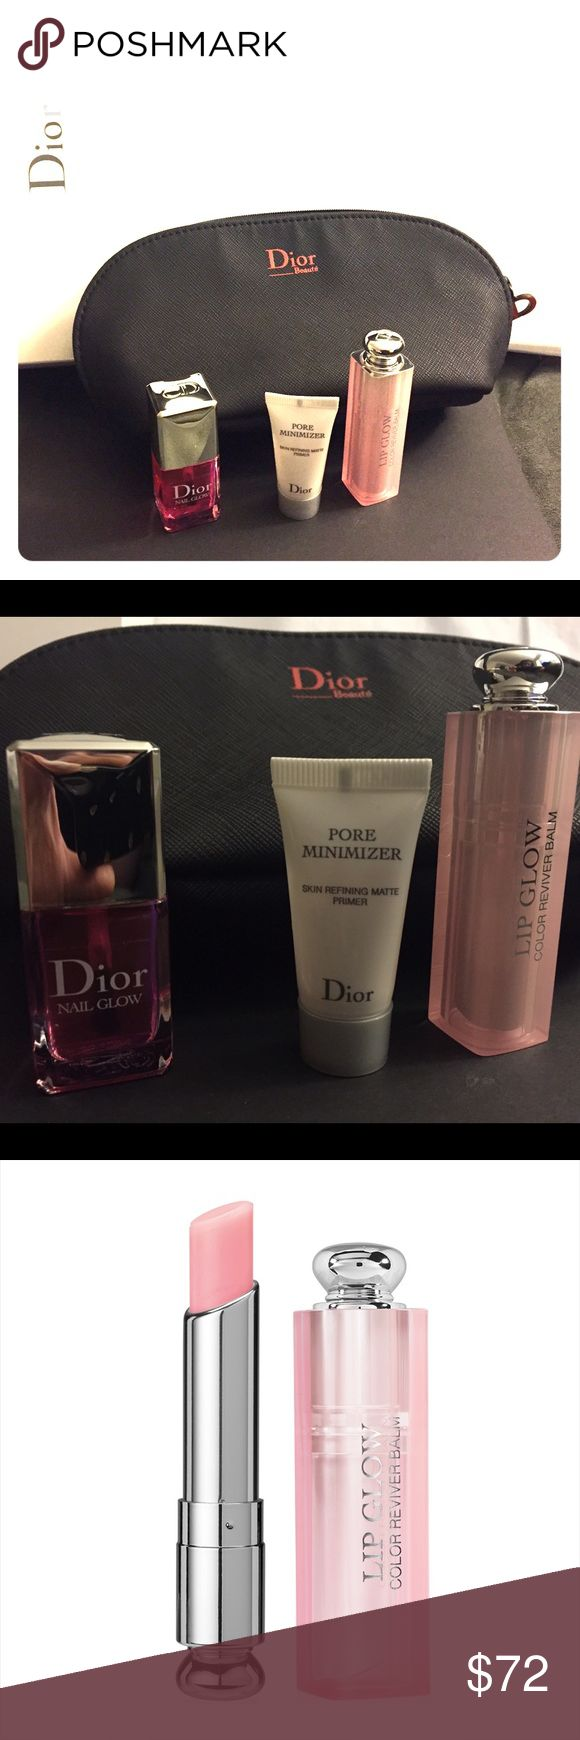 Dior Glow Holiday Gift Set - Lip Glow & Nail Glow A holiday set featuring Dior Glow products for radiant, allover beauty looks.  Packed in a sleek black makeup travel bag. Comes in gift-ready box! Dior Addict Lip Glow enhances the lips and brings out their natural color. Treat nails to Nail Glow, a brightening treatment, nail care enamel that creates the look of a French mani in just one coat.  - 0.12 oz/ 3.4 g Dior Addict Lip Glow in 001 Pink (full size)  - 0.33 oz/ 10 mL Nail Glow (full…